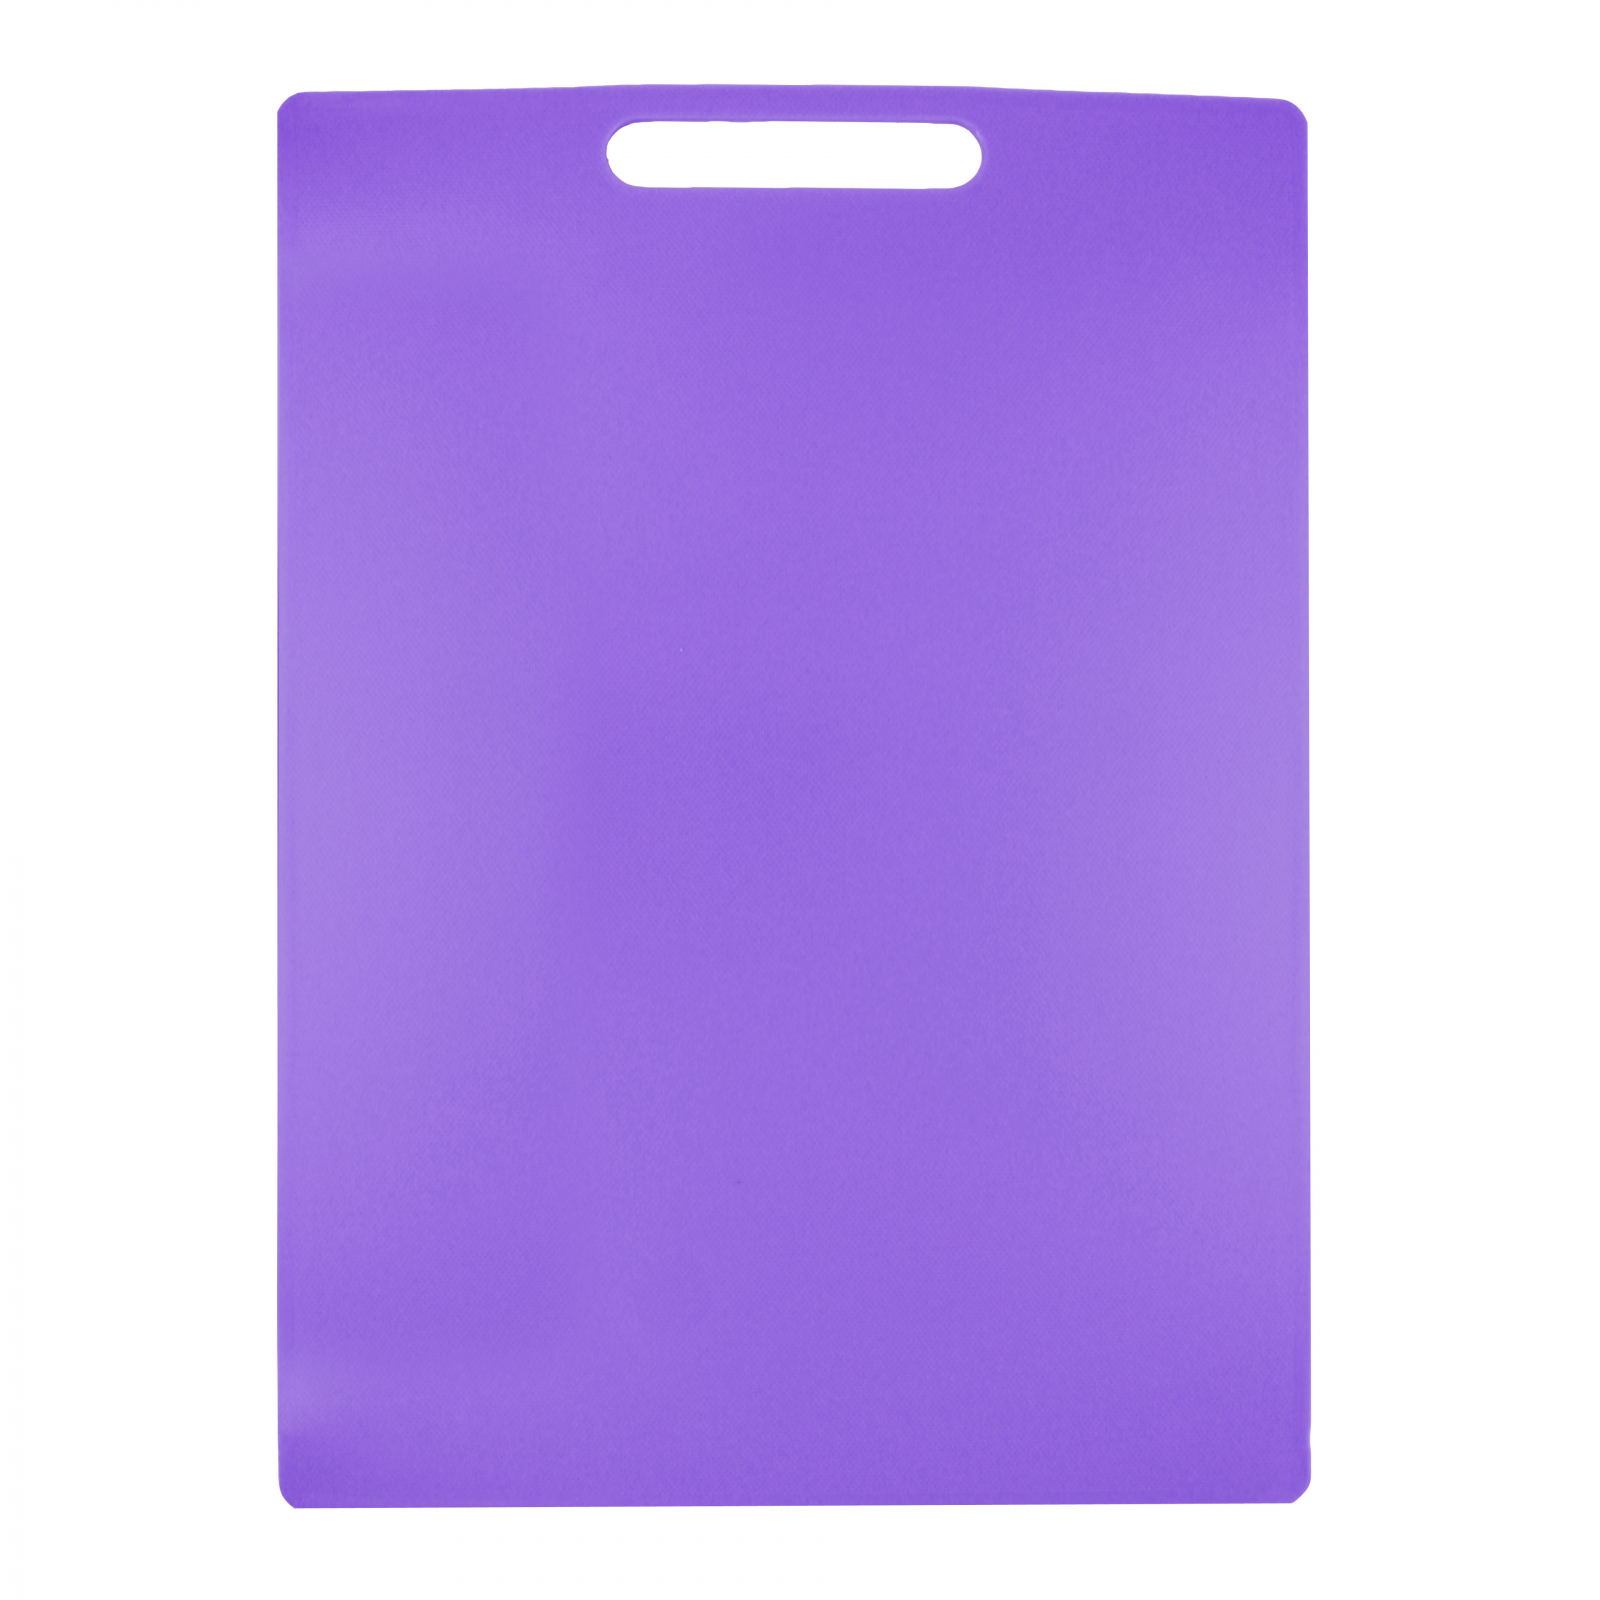 Home Essentials Kitchen Cutting Board 10.8 x 15 Inch - Purple